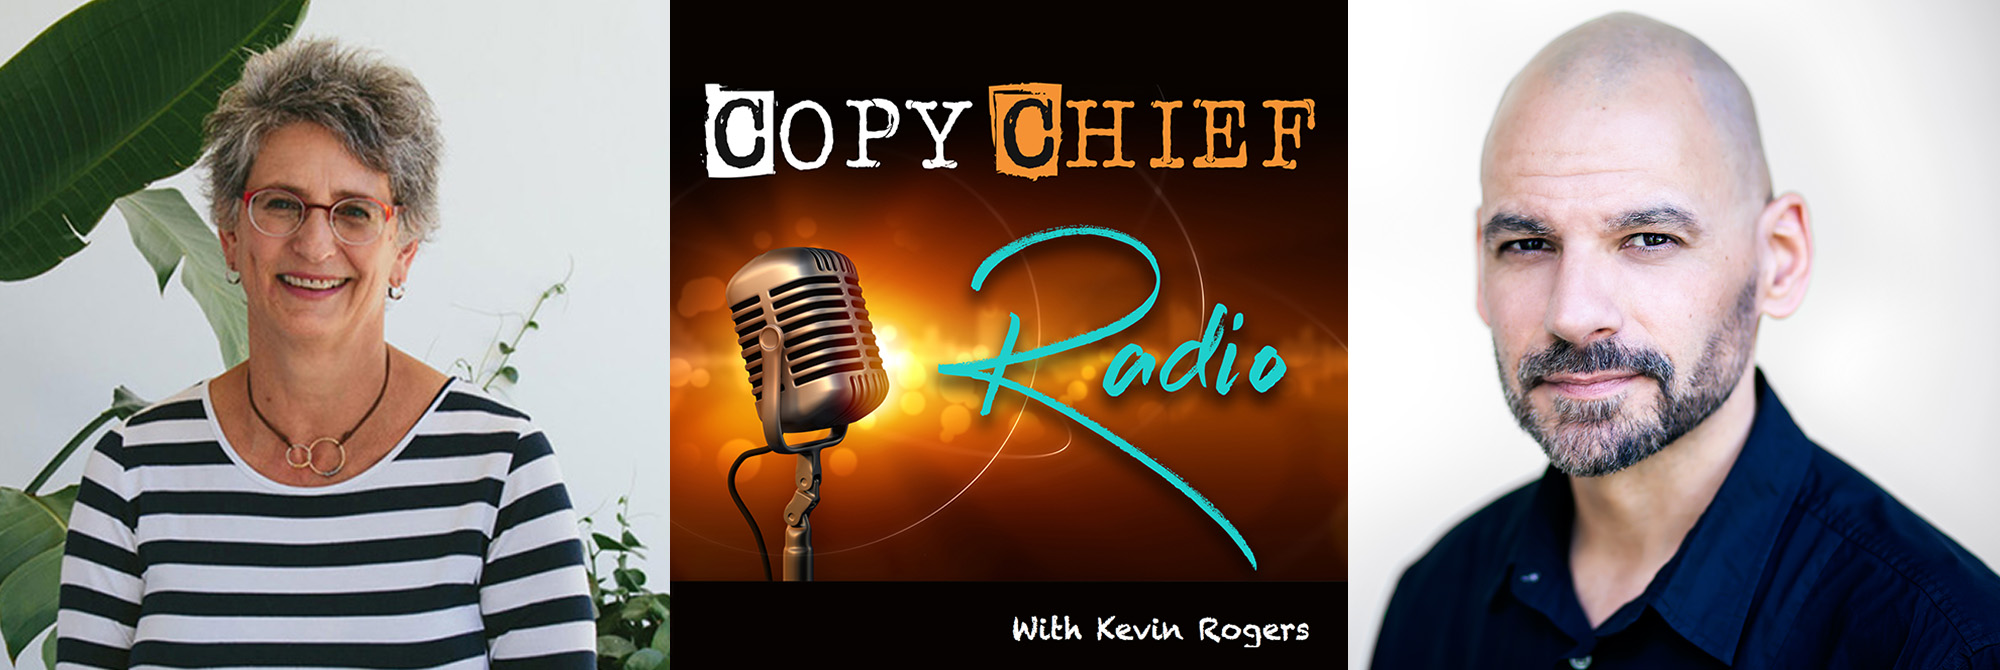 Copy Chief Radio header